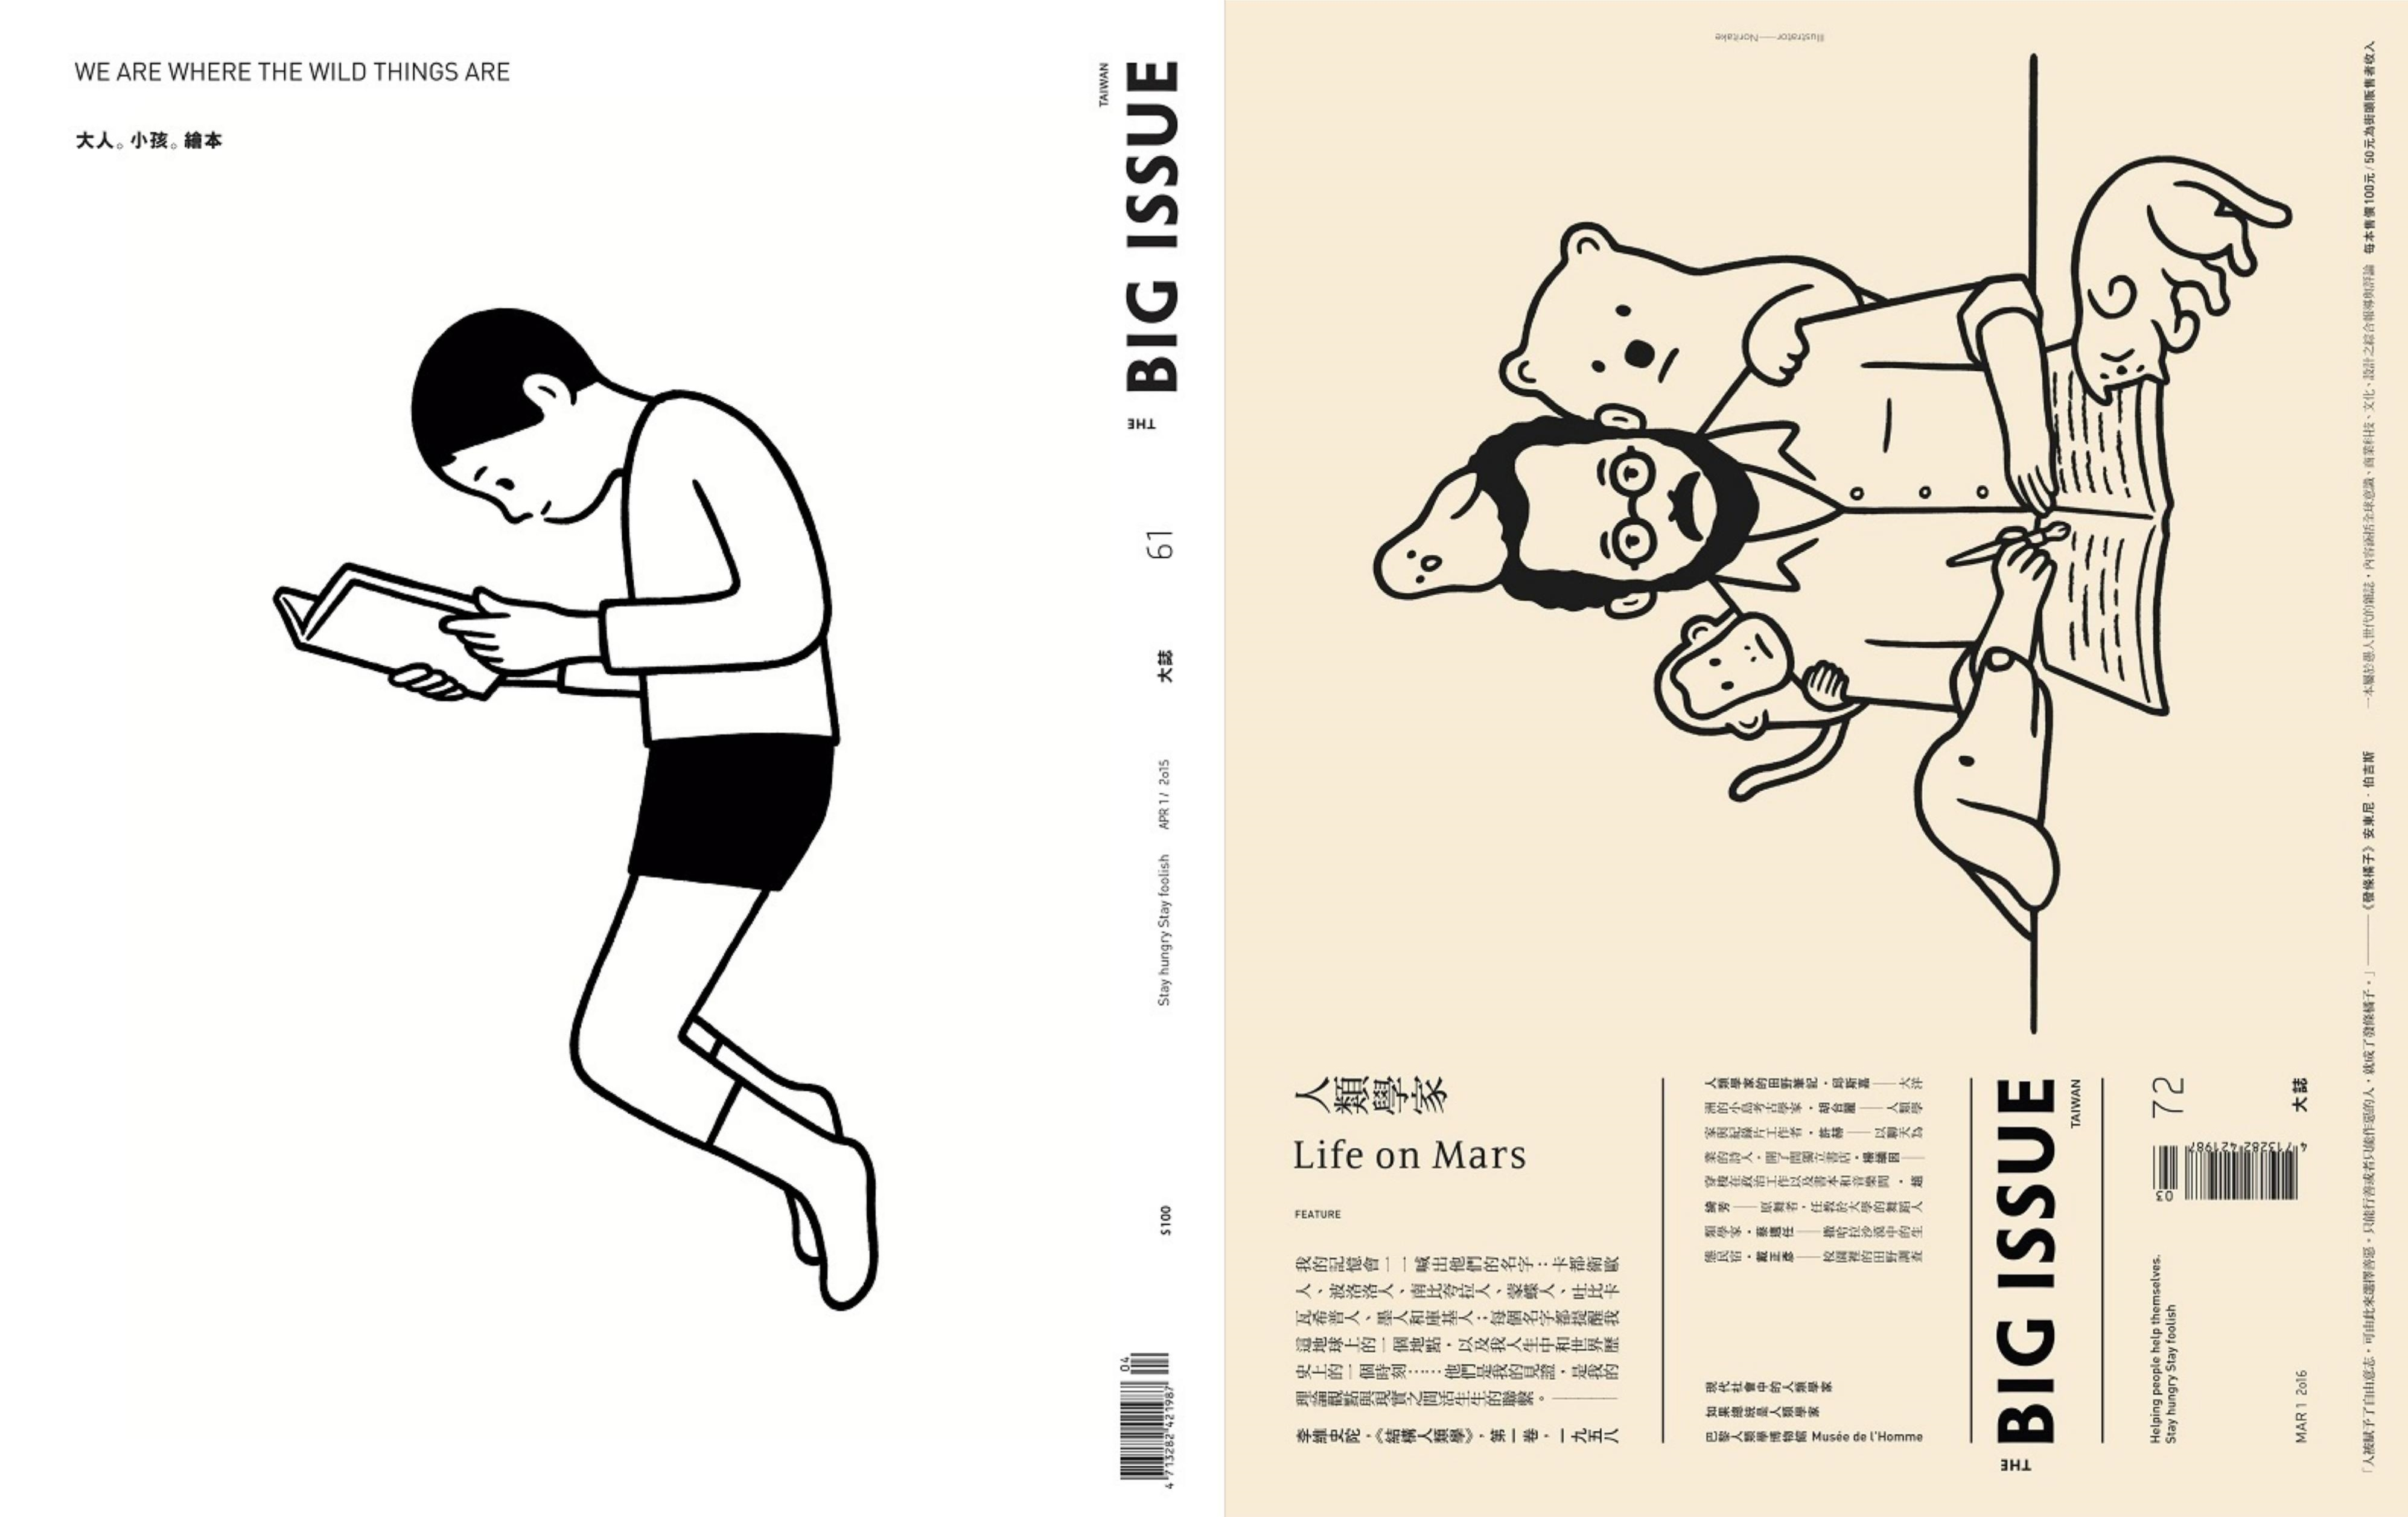 The 61st and 72nd covers of The Big Issue Taiwan in collaboration with Noritake, an illustrator. Credit: The Big Issue Taiwan